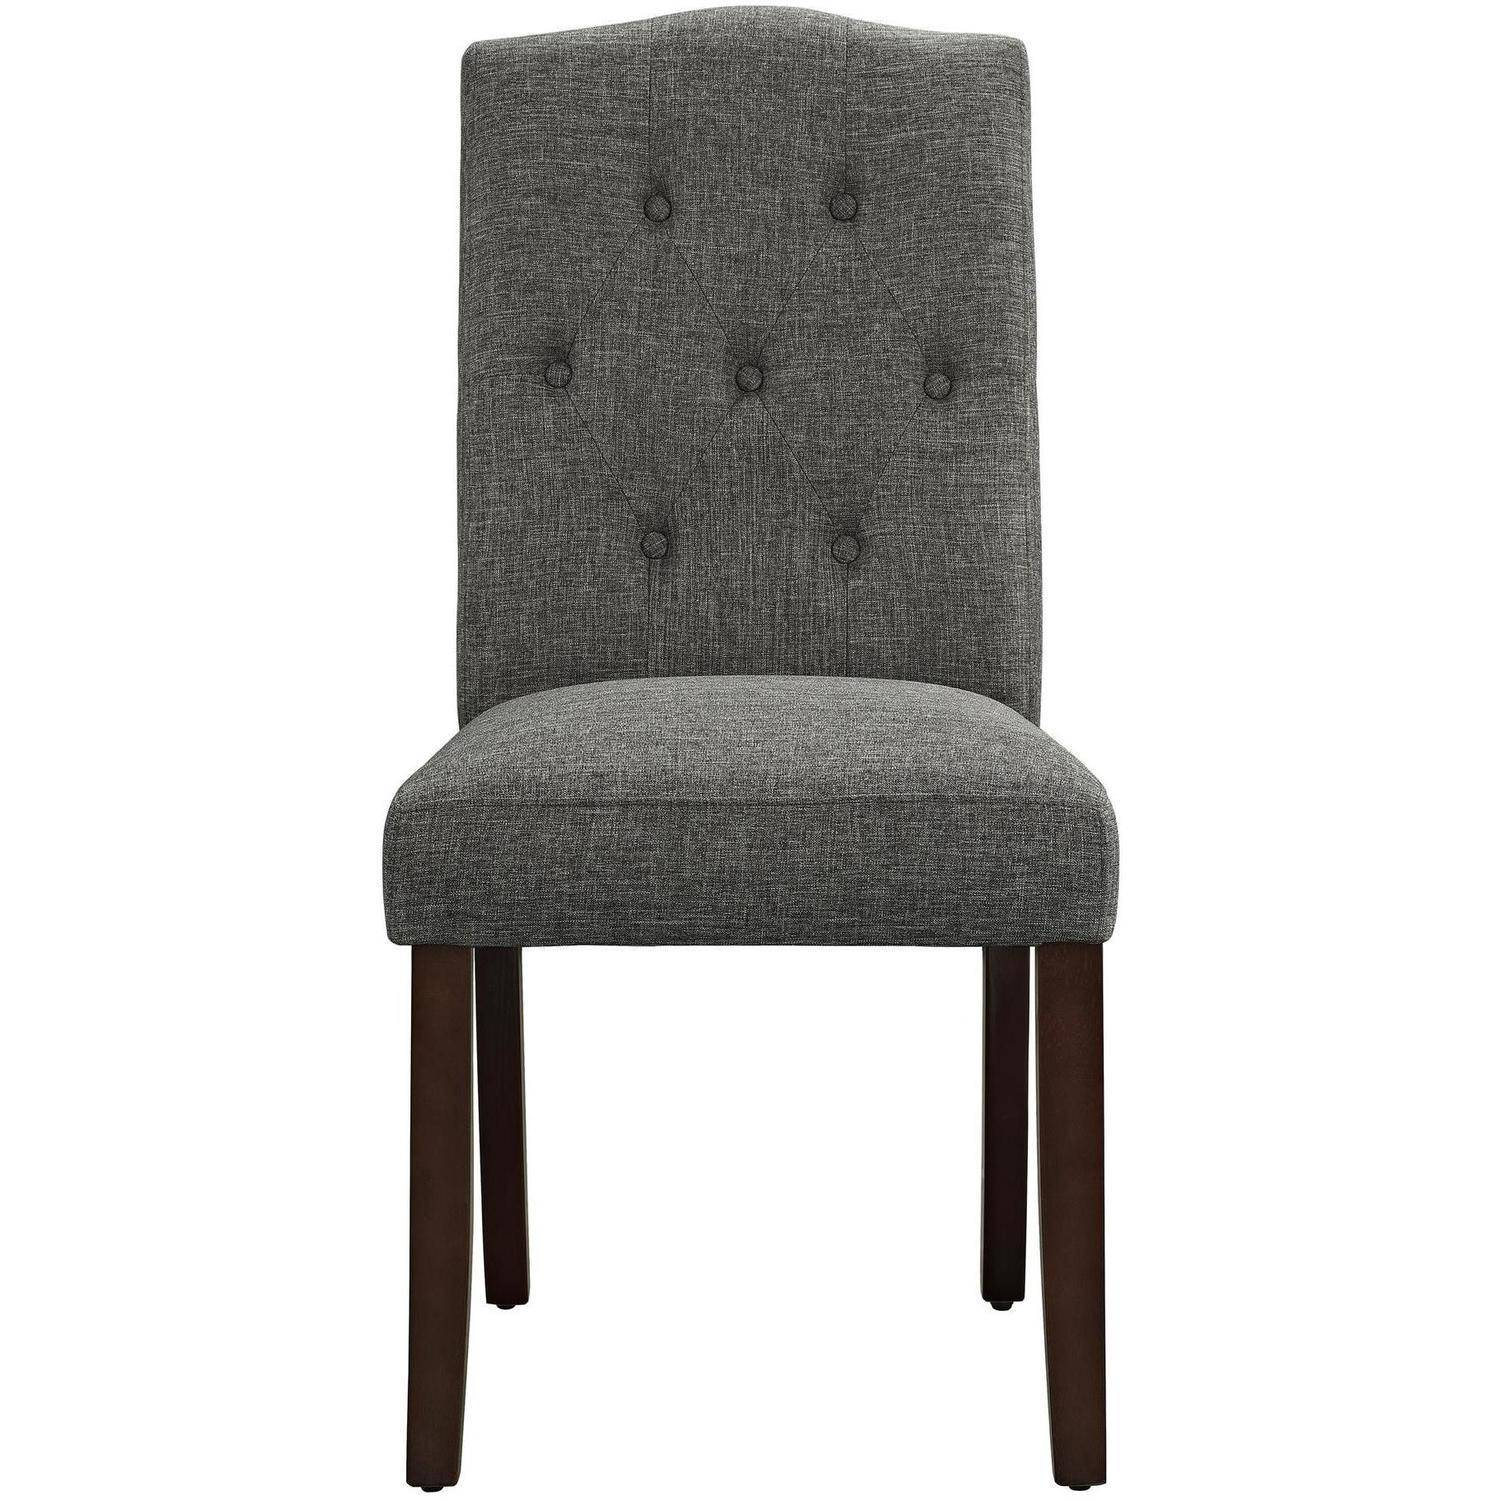 Merveilleux Better Homes And Gardens Parsons Tufted Dining Chair, Multiple Colors    Walmart.com